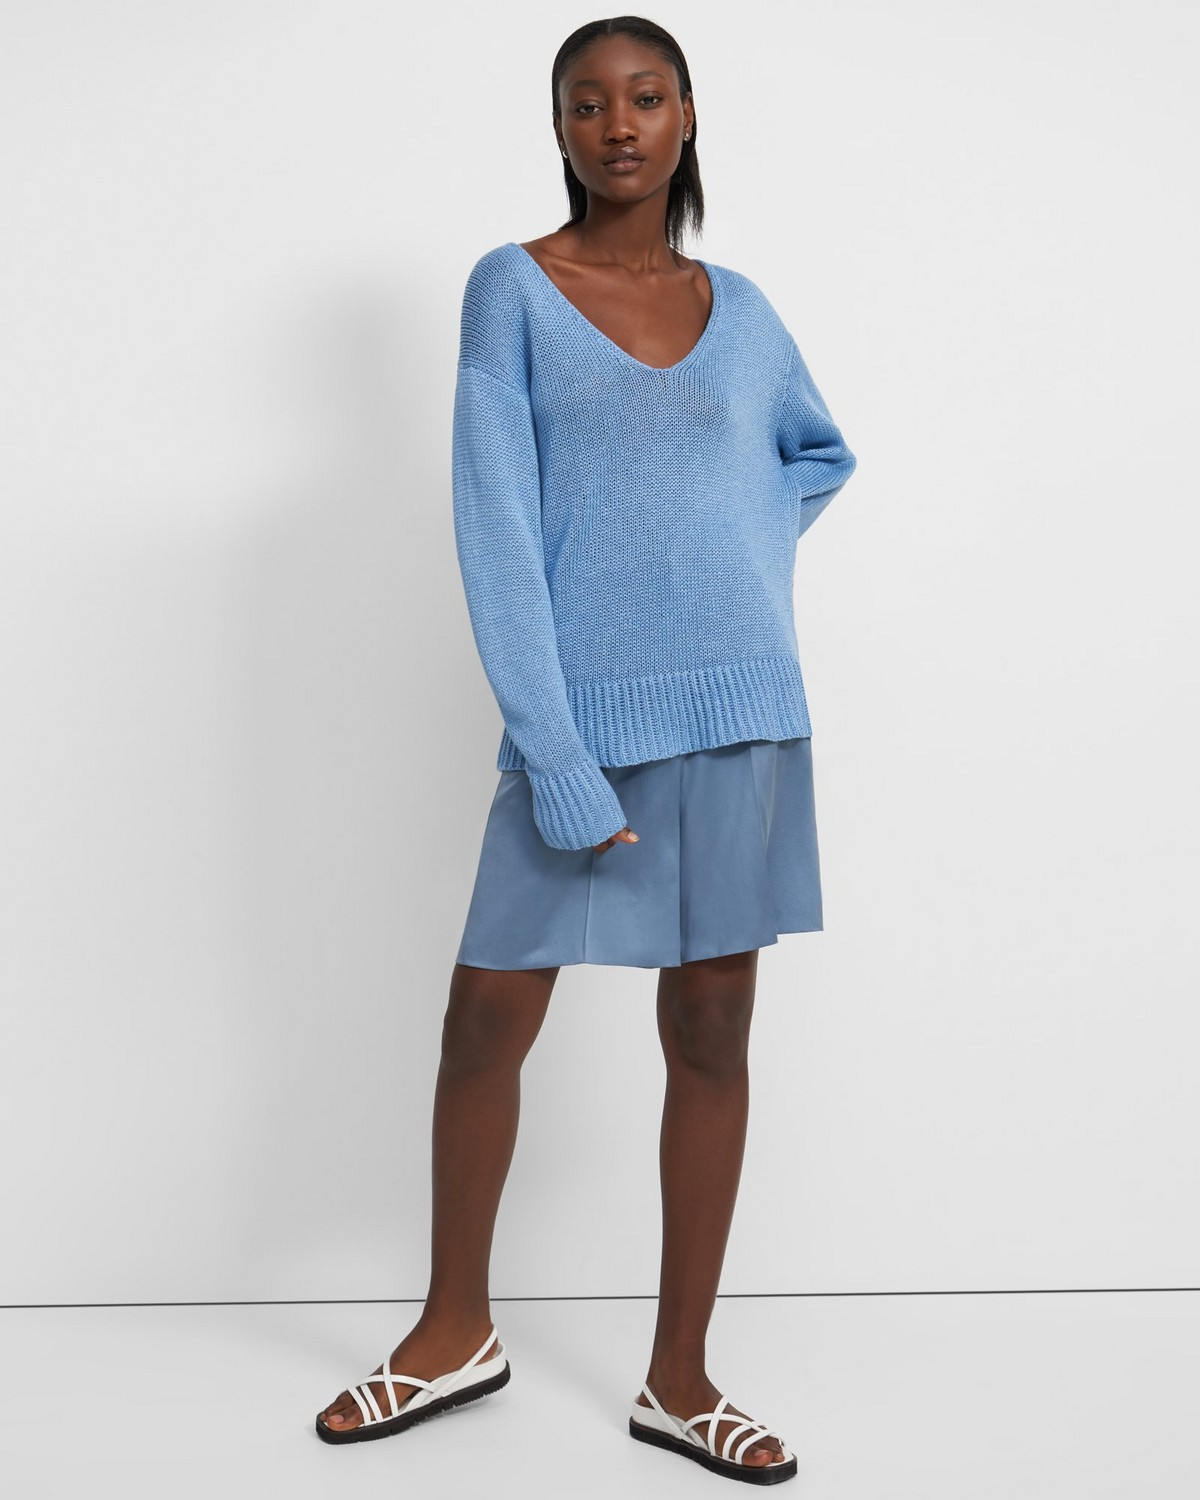 V-Neck Sweater in Knit Linen